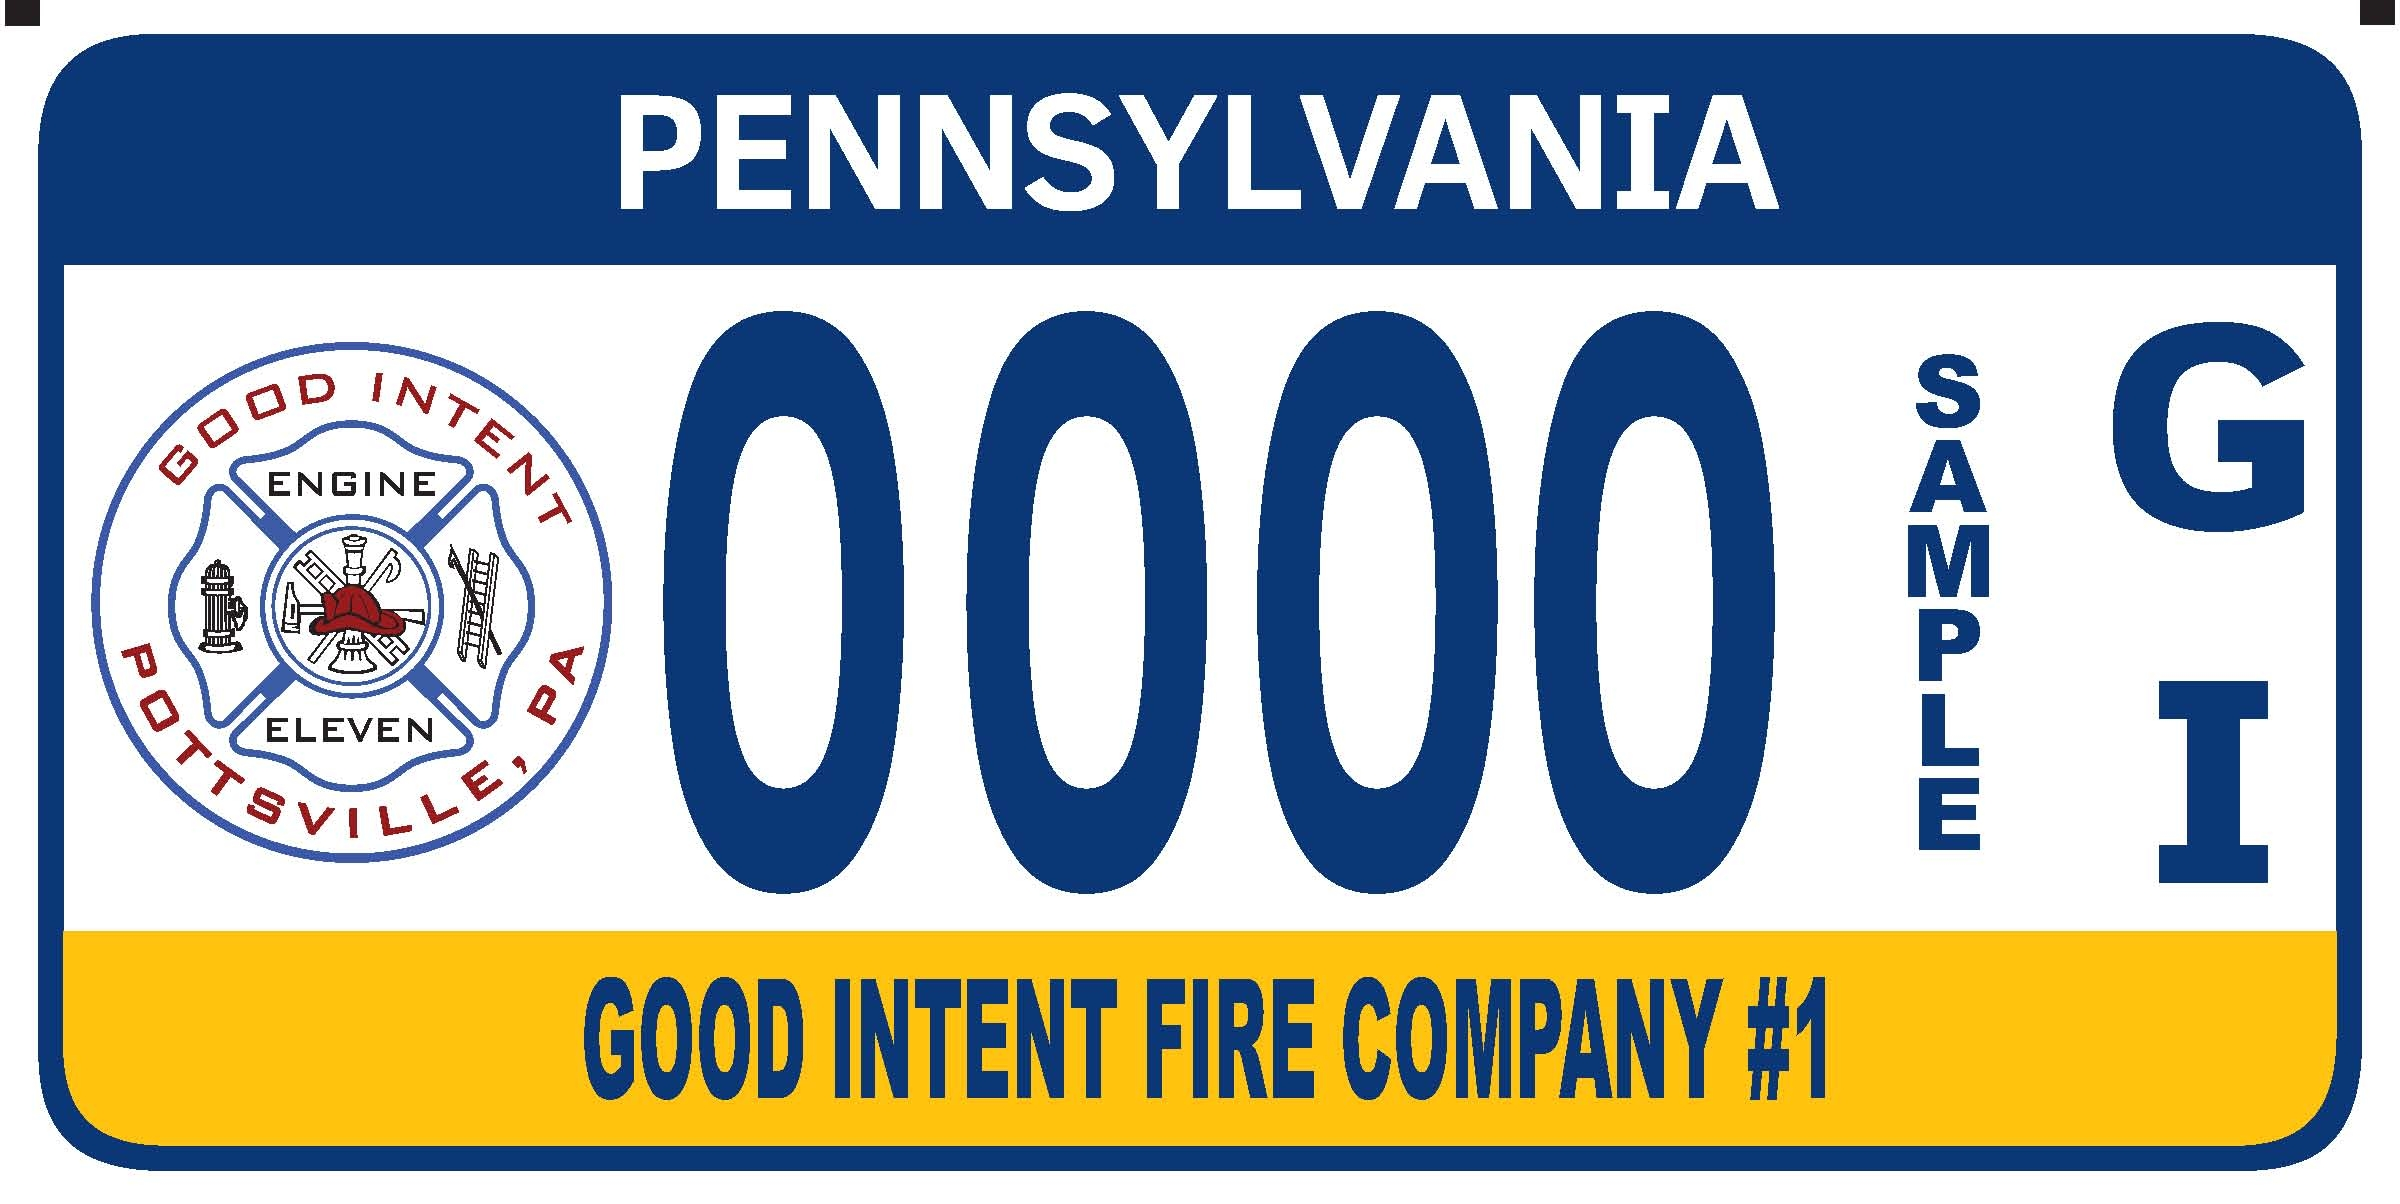 Good Intent Fire Company #1